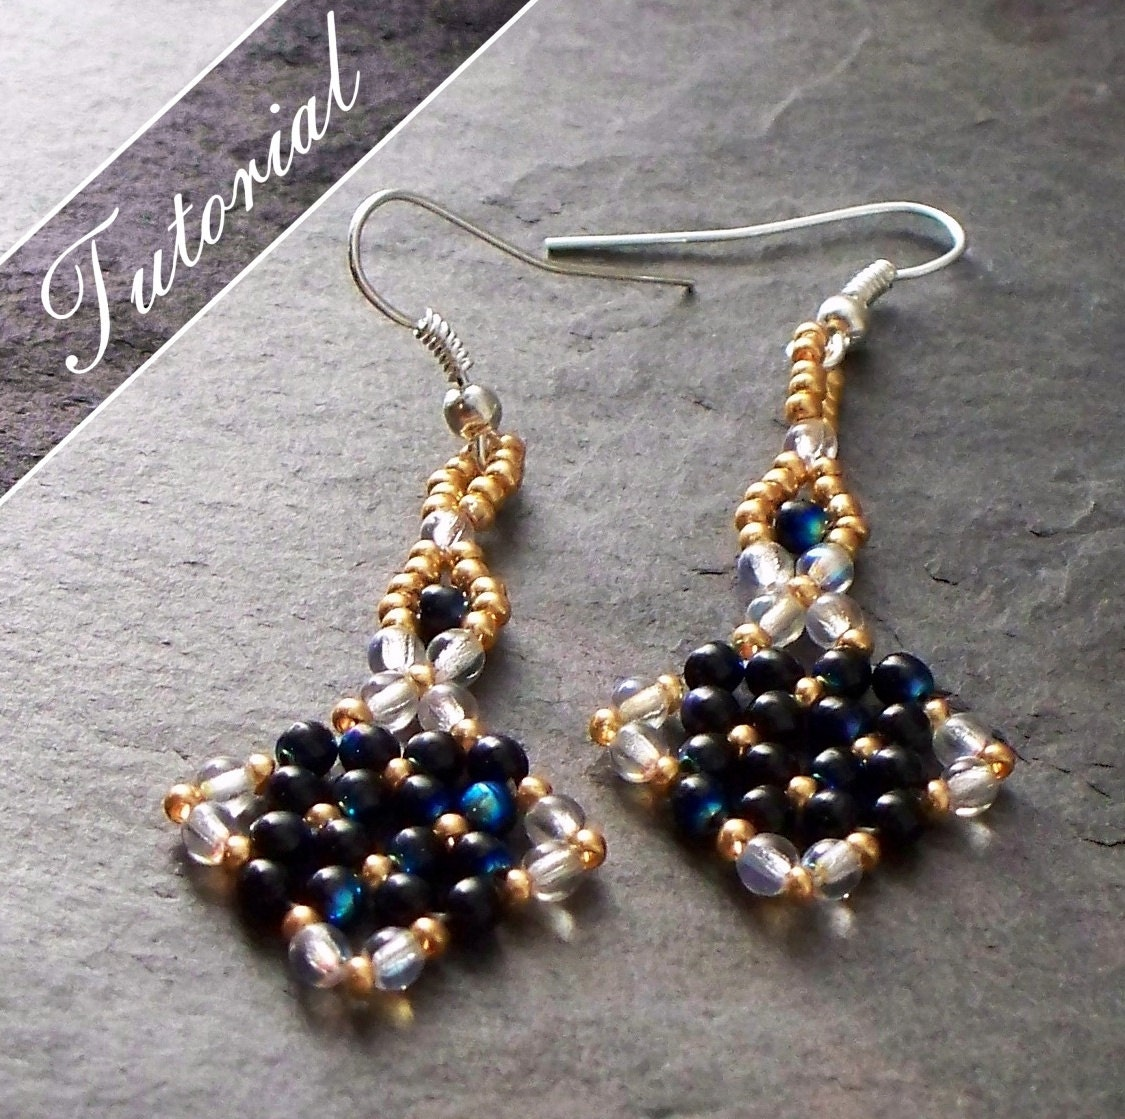 Onestep Earrings: Beading Tutorial And Pattern Earrings RAW By